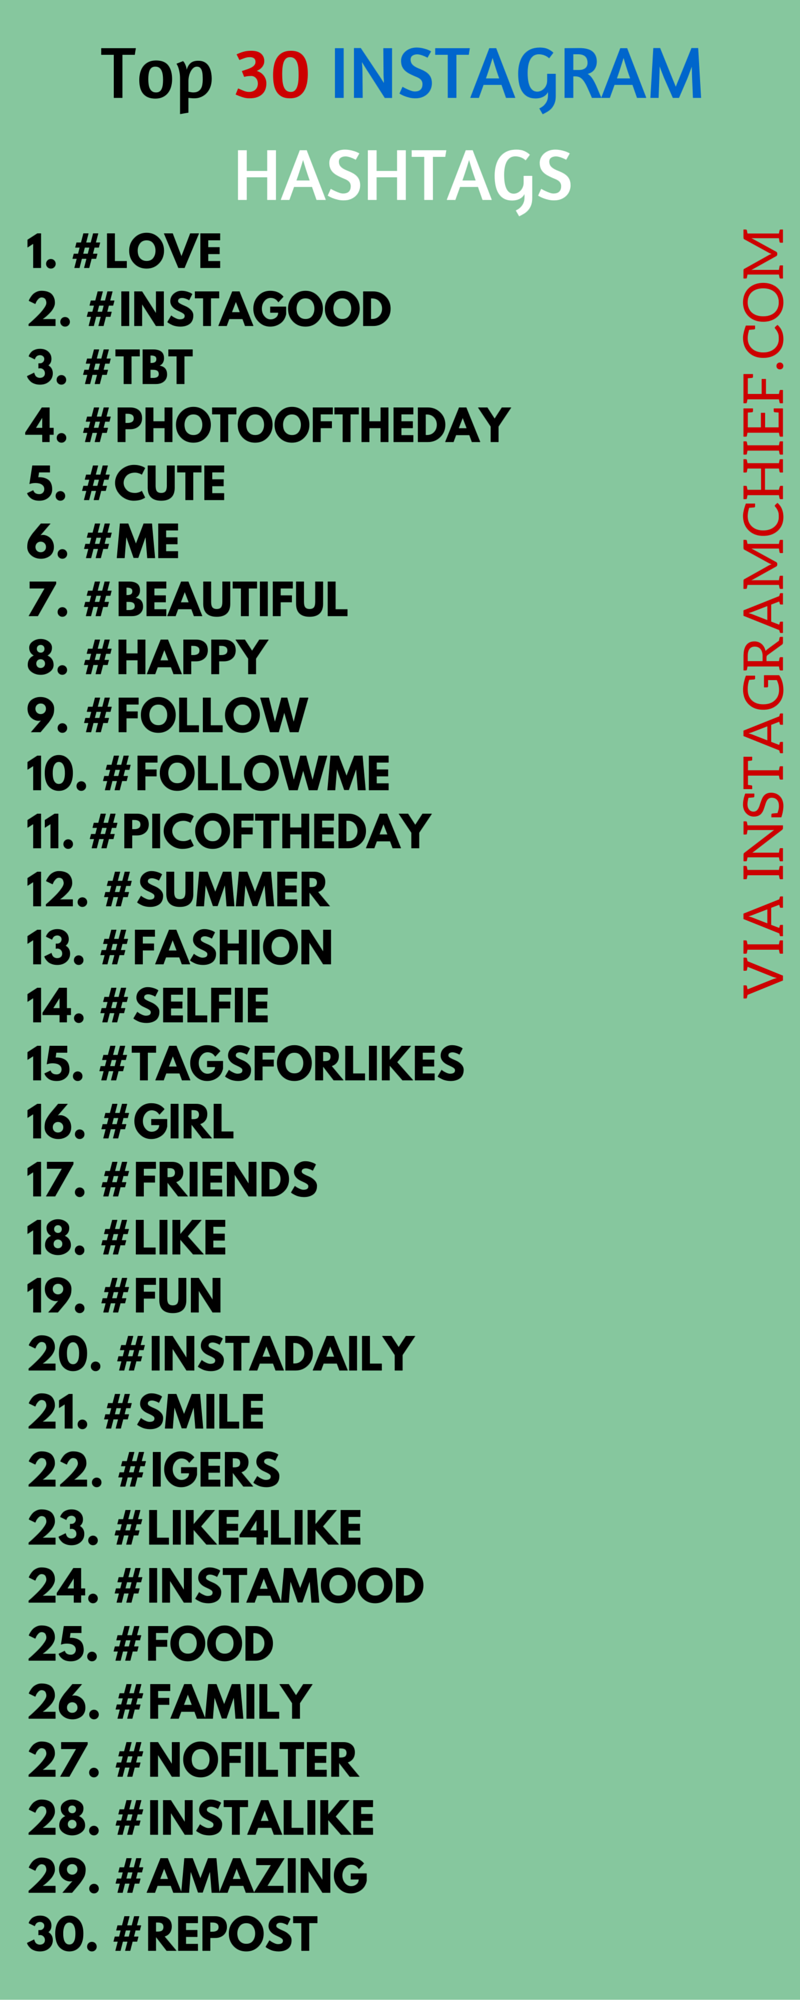 hashtags for likes selfie